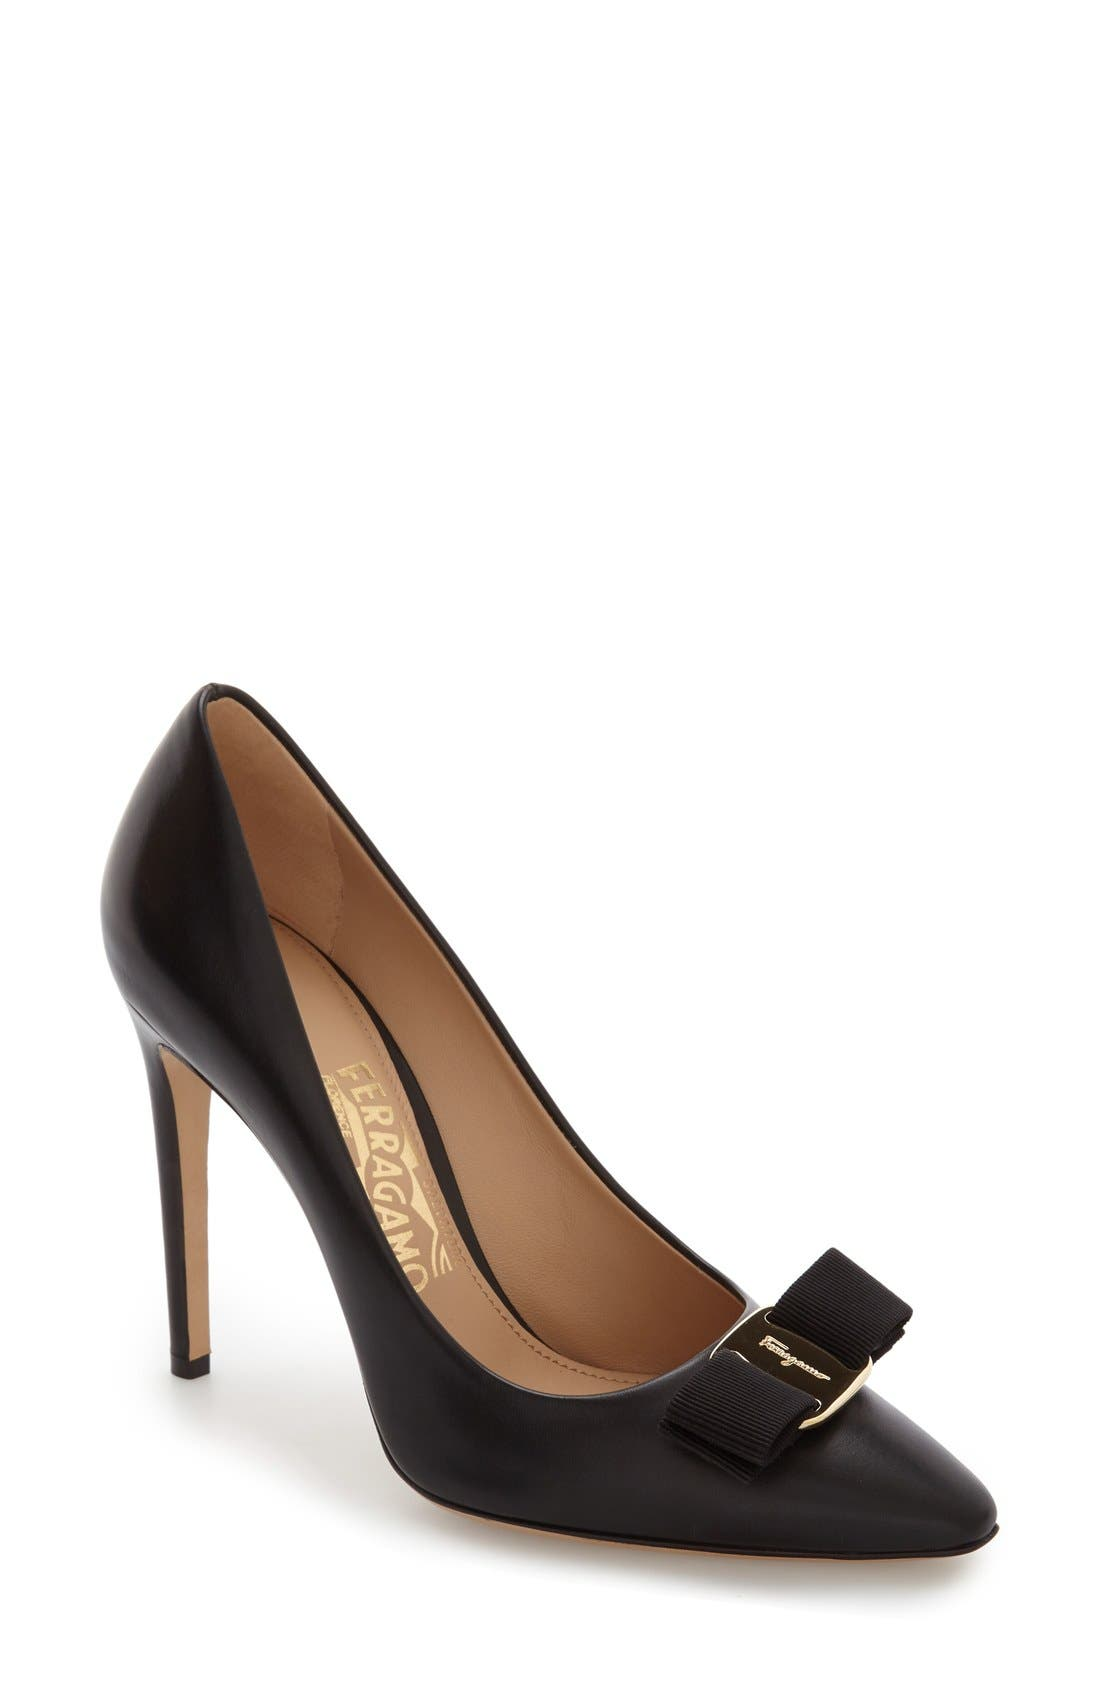 Main Image - Salvatore Ferragamo Emy Pointed Toe Bow Pump (Women)